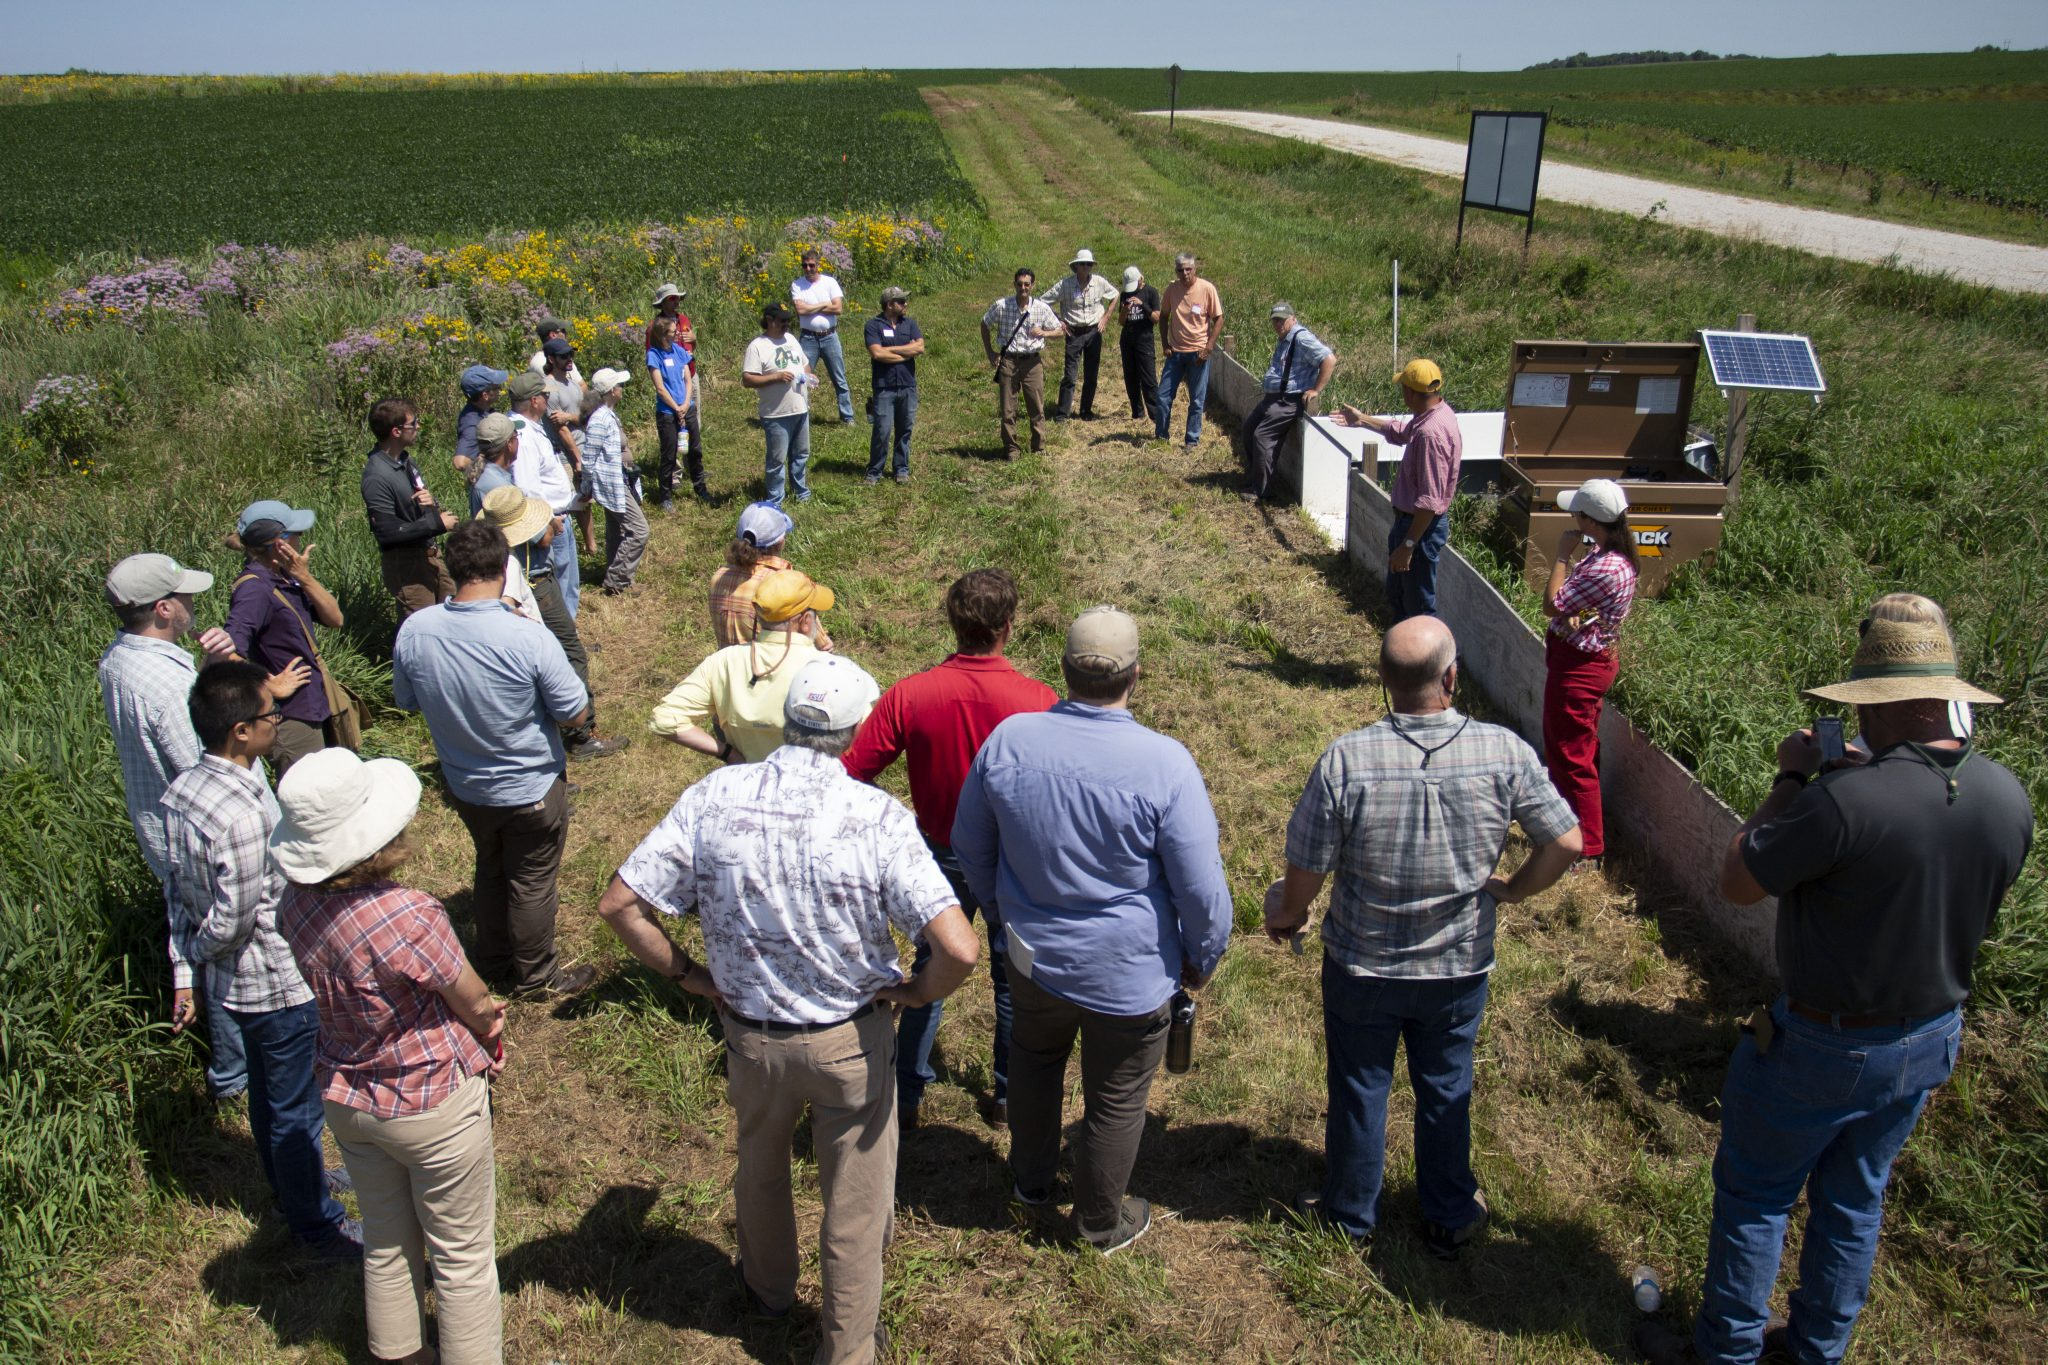 Farmers, land owners, scientists, and extension specialists gather to discuss research and implementation of prairie strips on commercial farms at Iowa State University Armstrong Memorial Research and Demonstration Farm, Lewis, Iowa. Prairie strips reduce soil and nutrient loss from corn and soybean farms while also supporting more diverse and abundant wildlife.